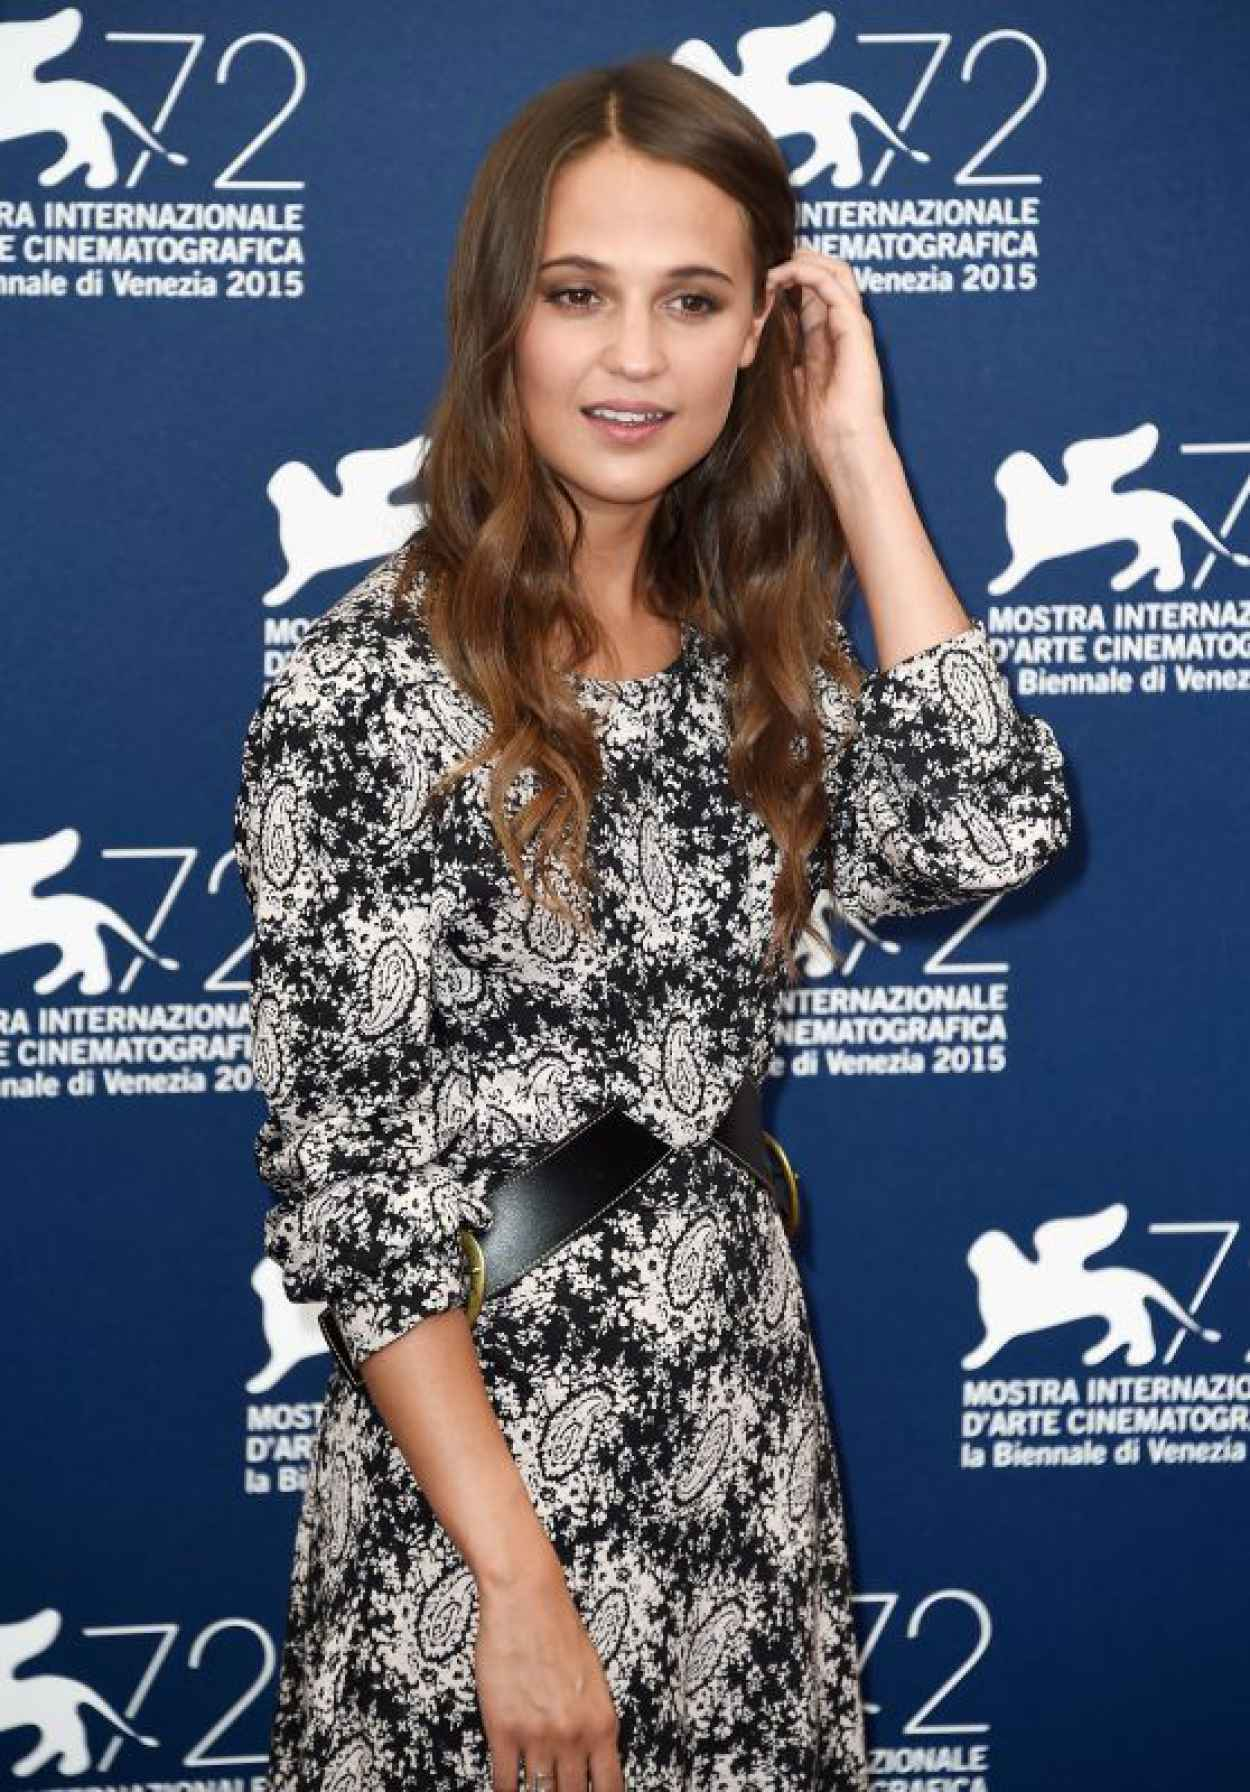 Alicia Vikander - The Danish Girl Photocall - 72nd Venice Film Festival-1